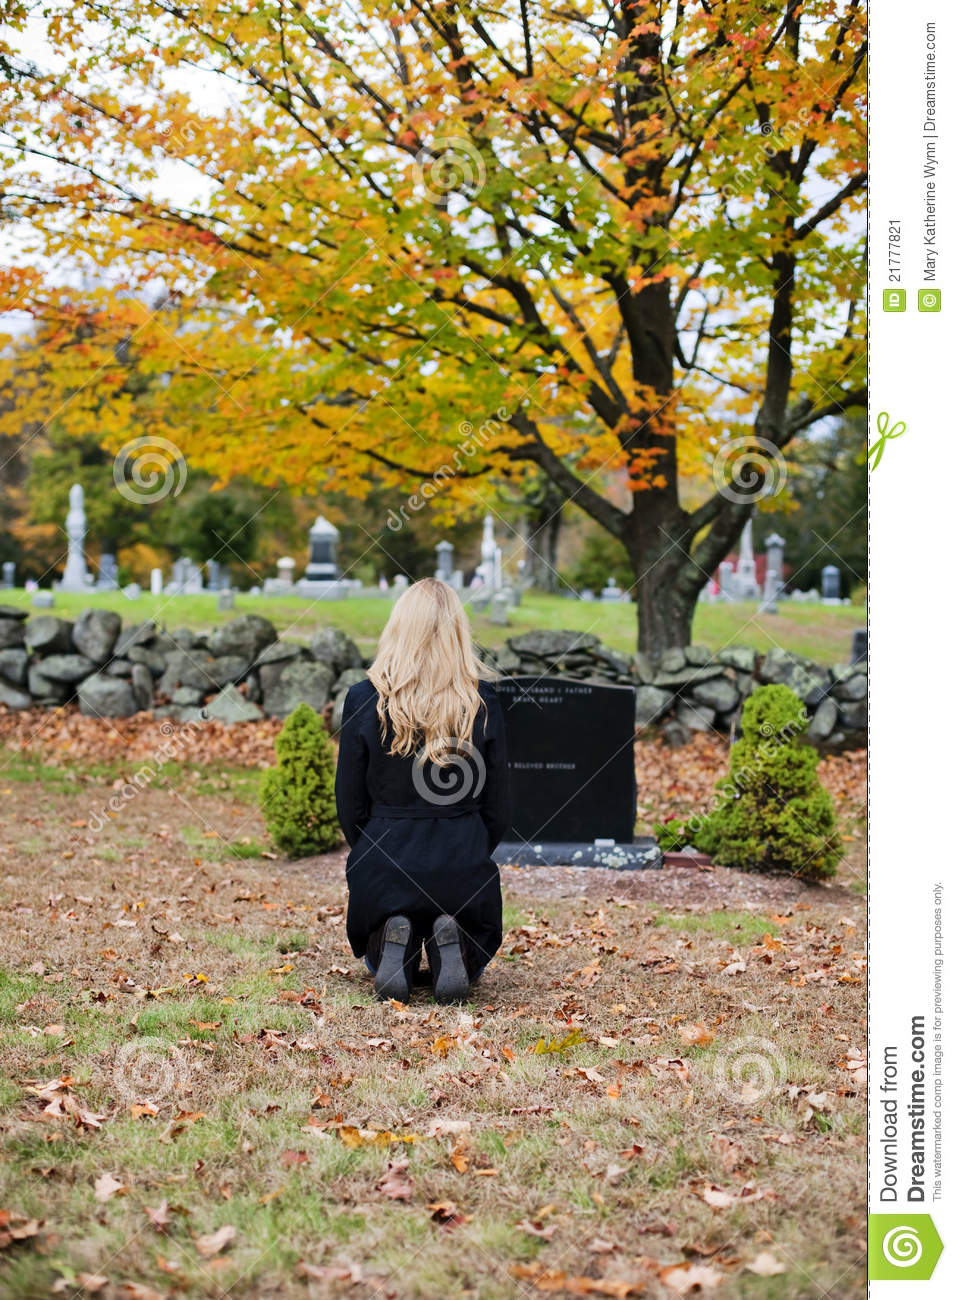 Grieving woman in cemetery